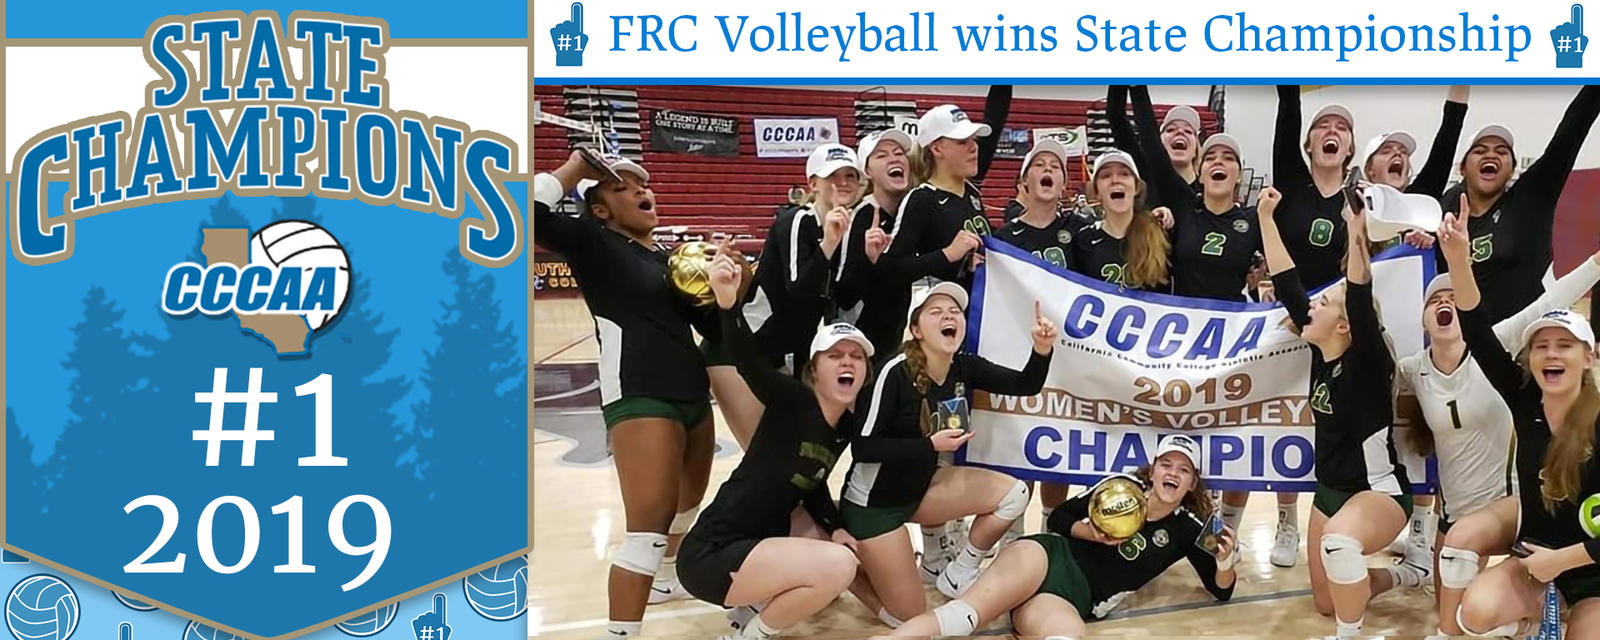 FRC volleyball wins CCCAA state championship